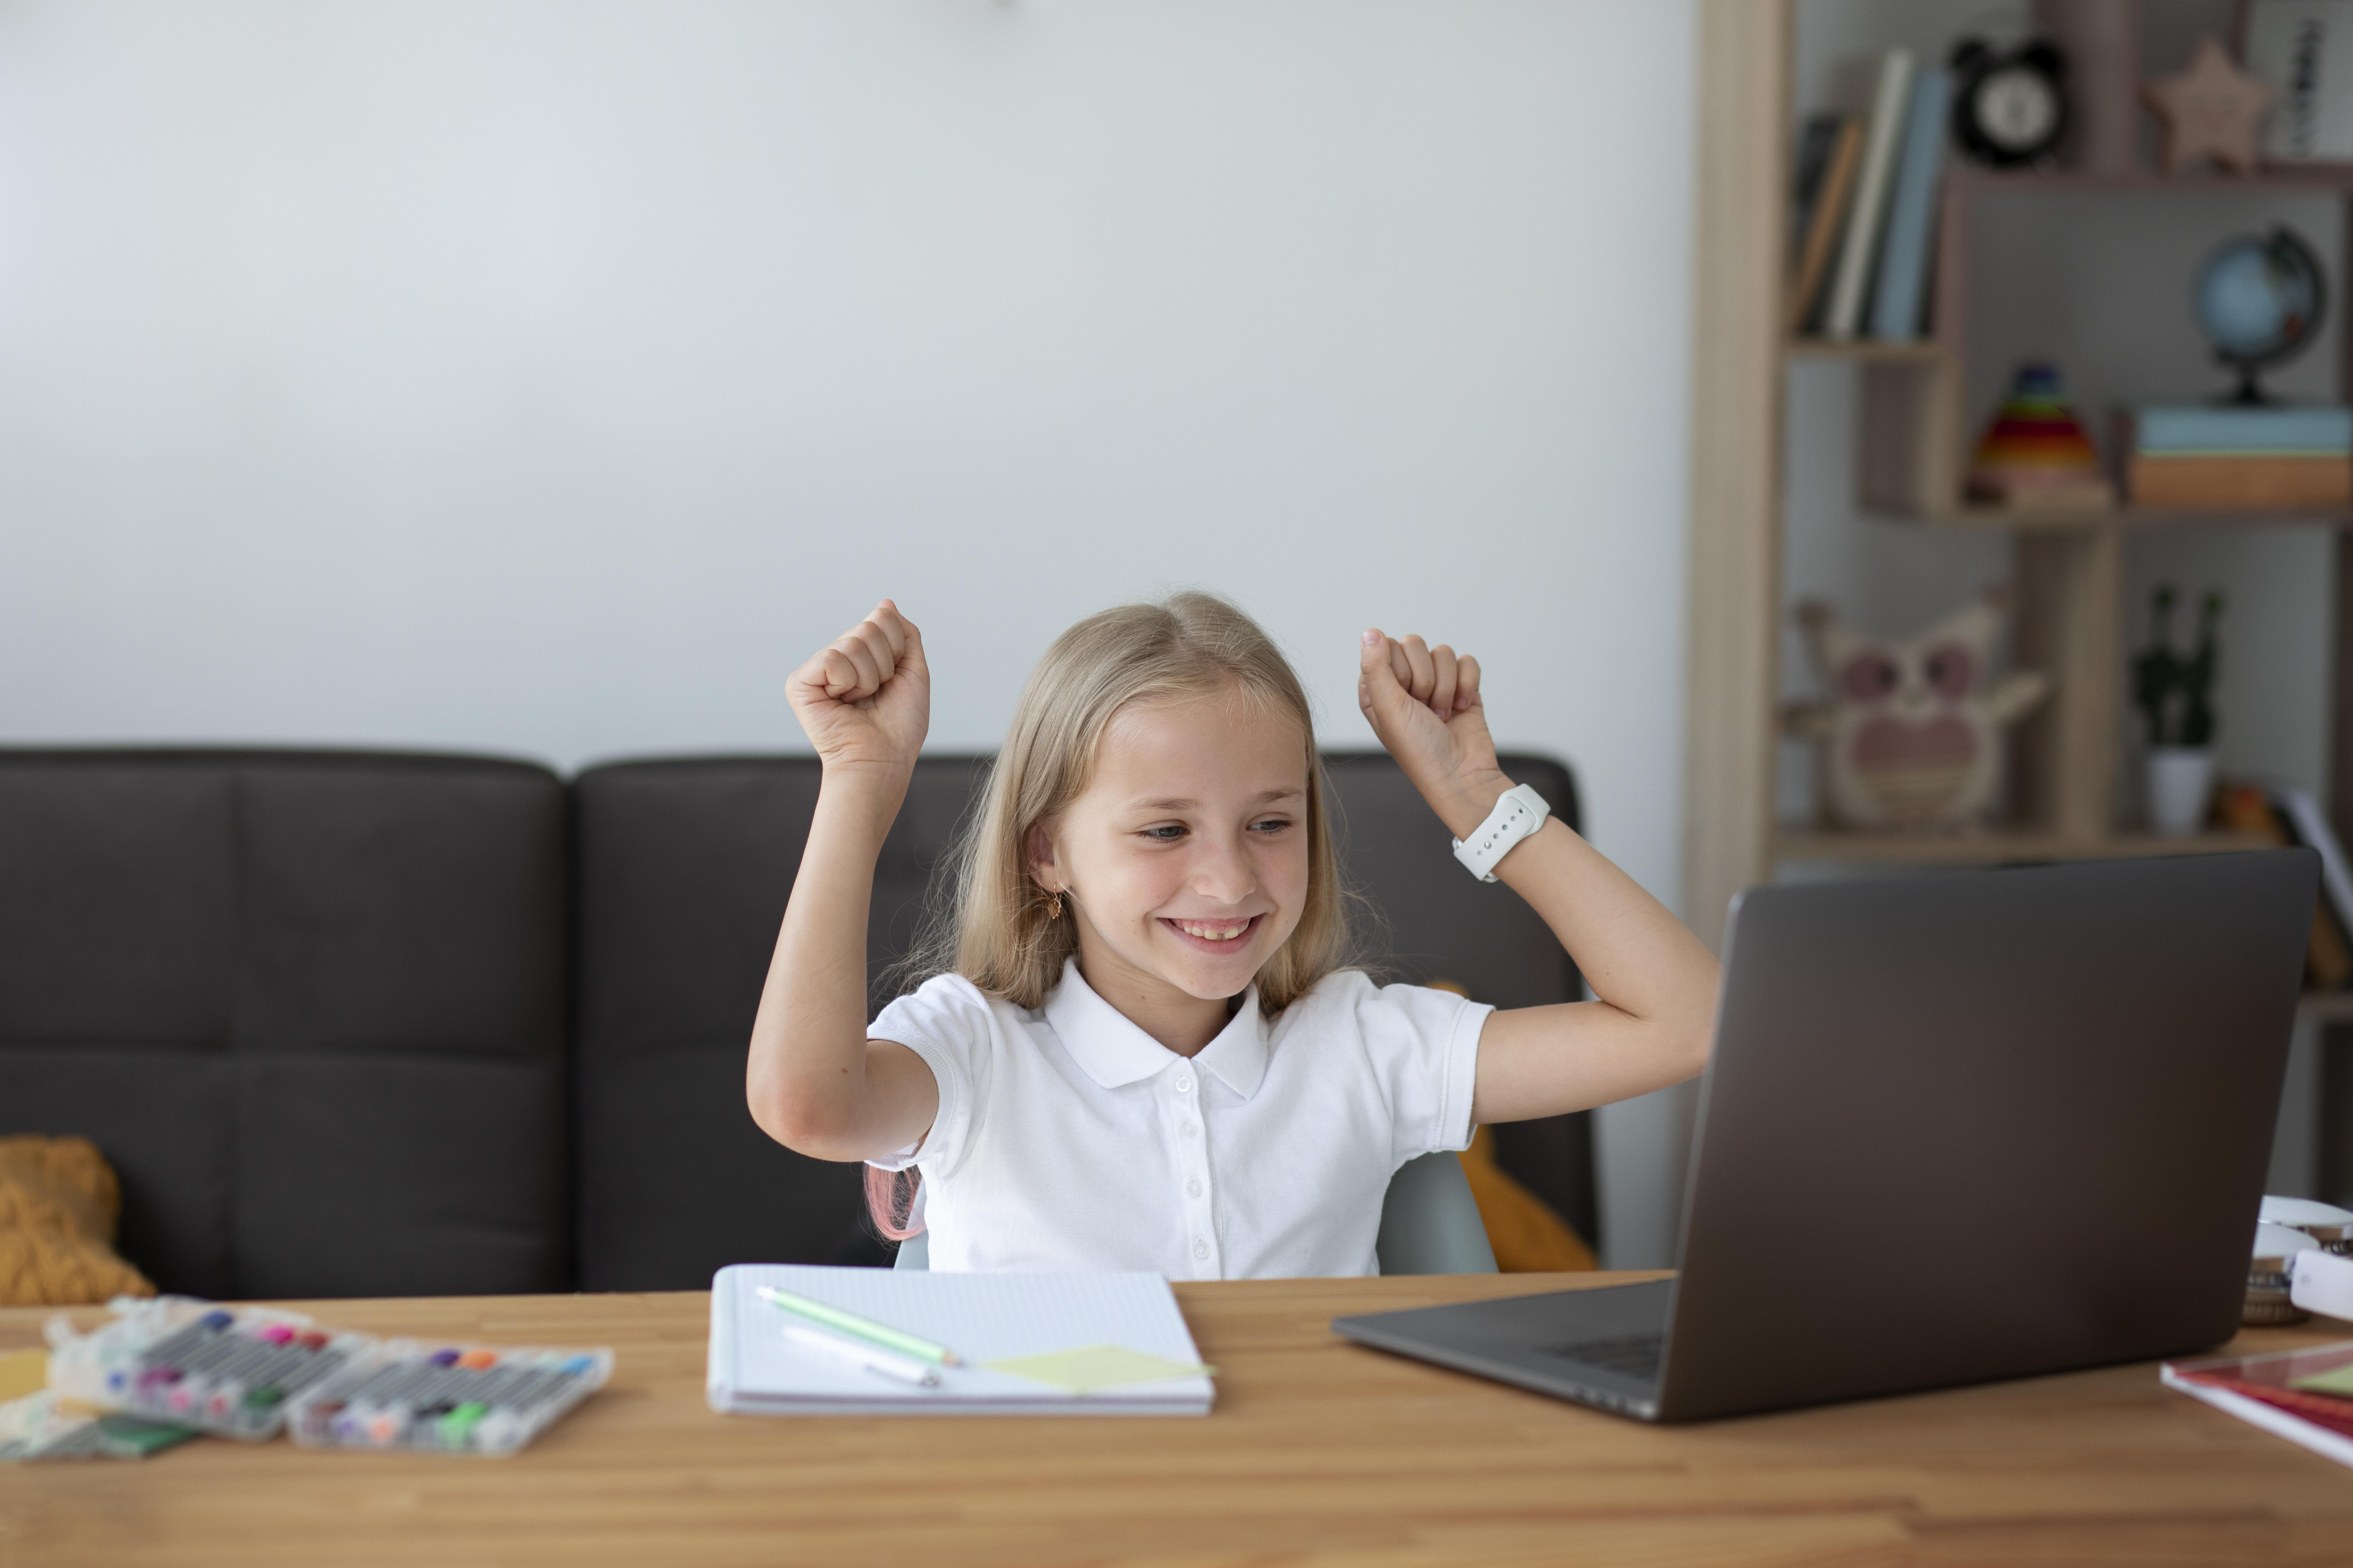 Associate teaching methods and classroom management flexibly to raise students' emotional intelligence in eLearning